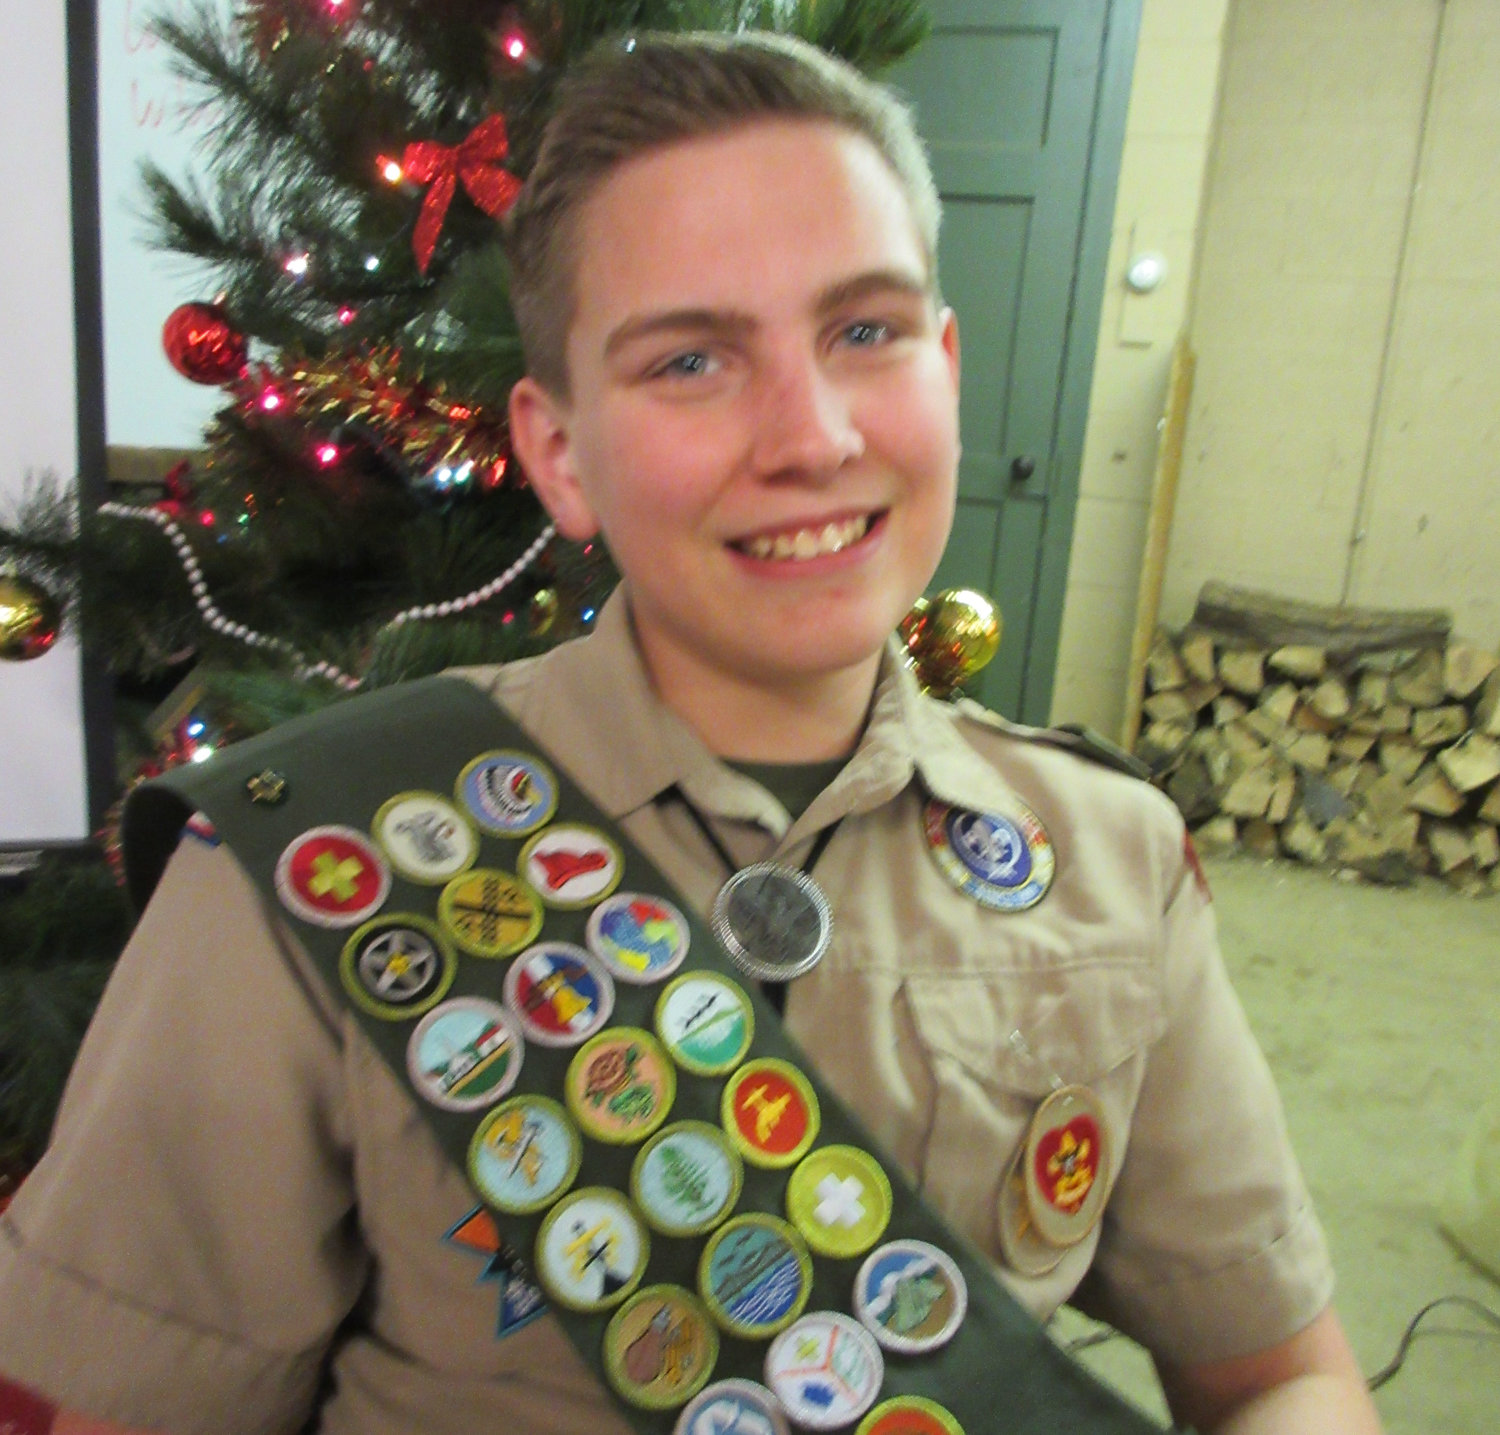 Leo Nissley was awarded the rank of Life Scout. His final Scouting goal is to earn the rank of Eagle Scout. He is in the process of searching for an Eagle Scout project to benefit the community.